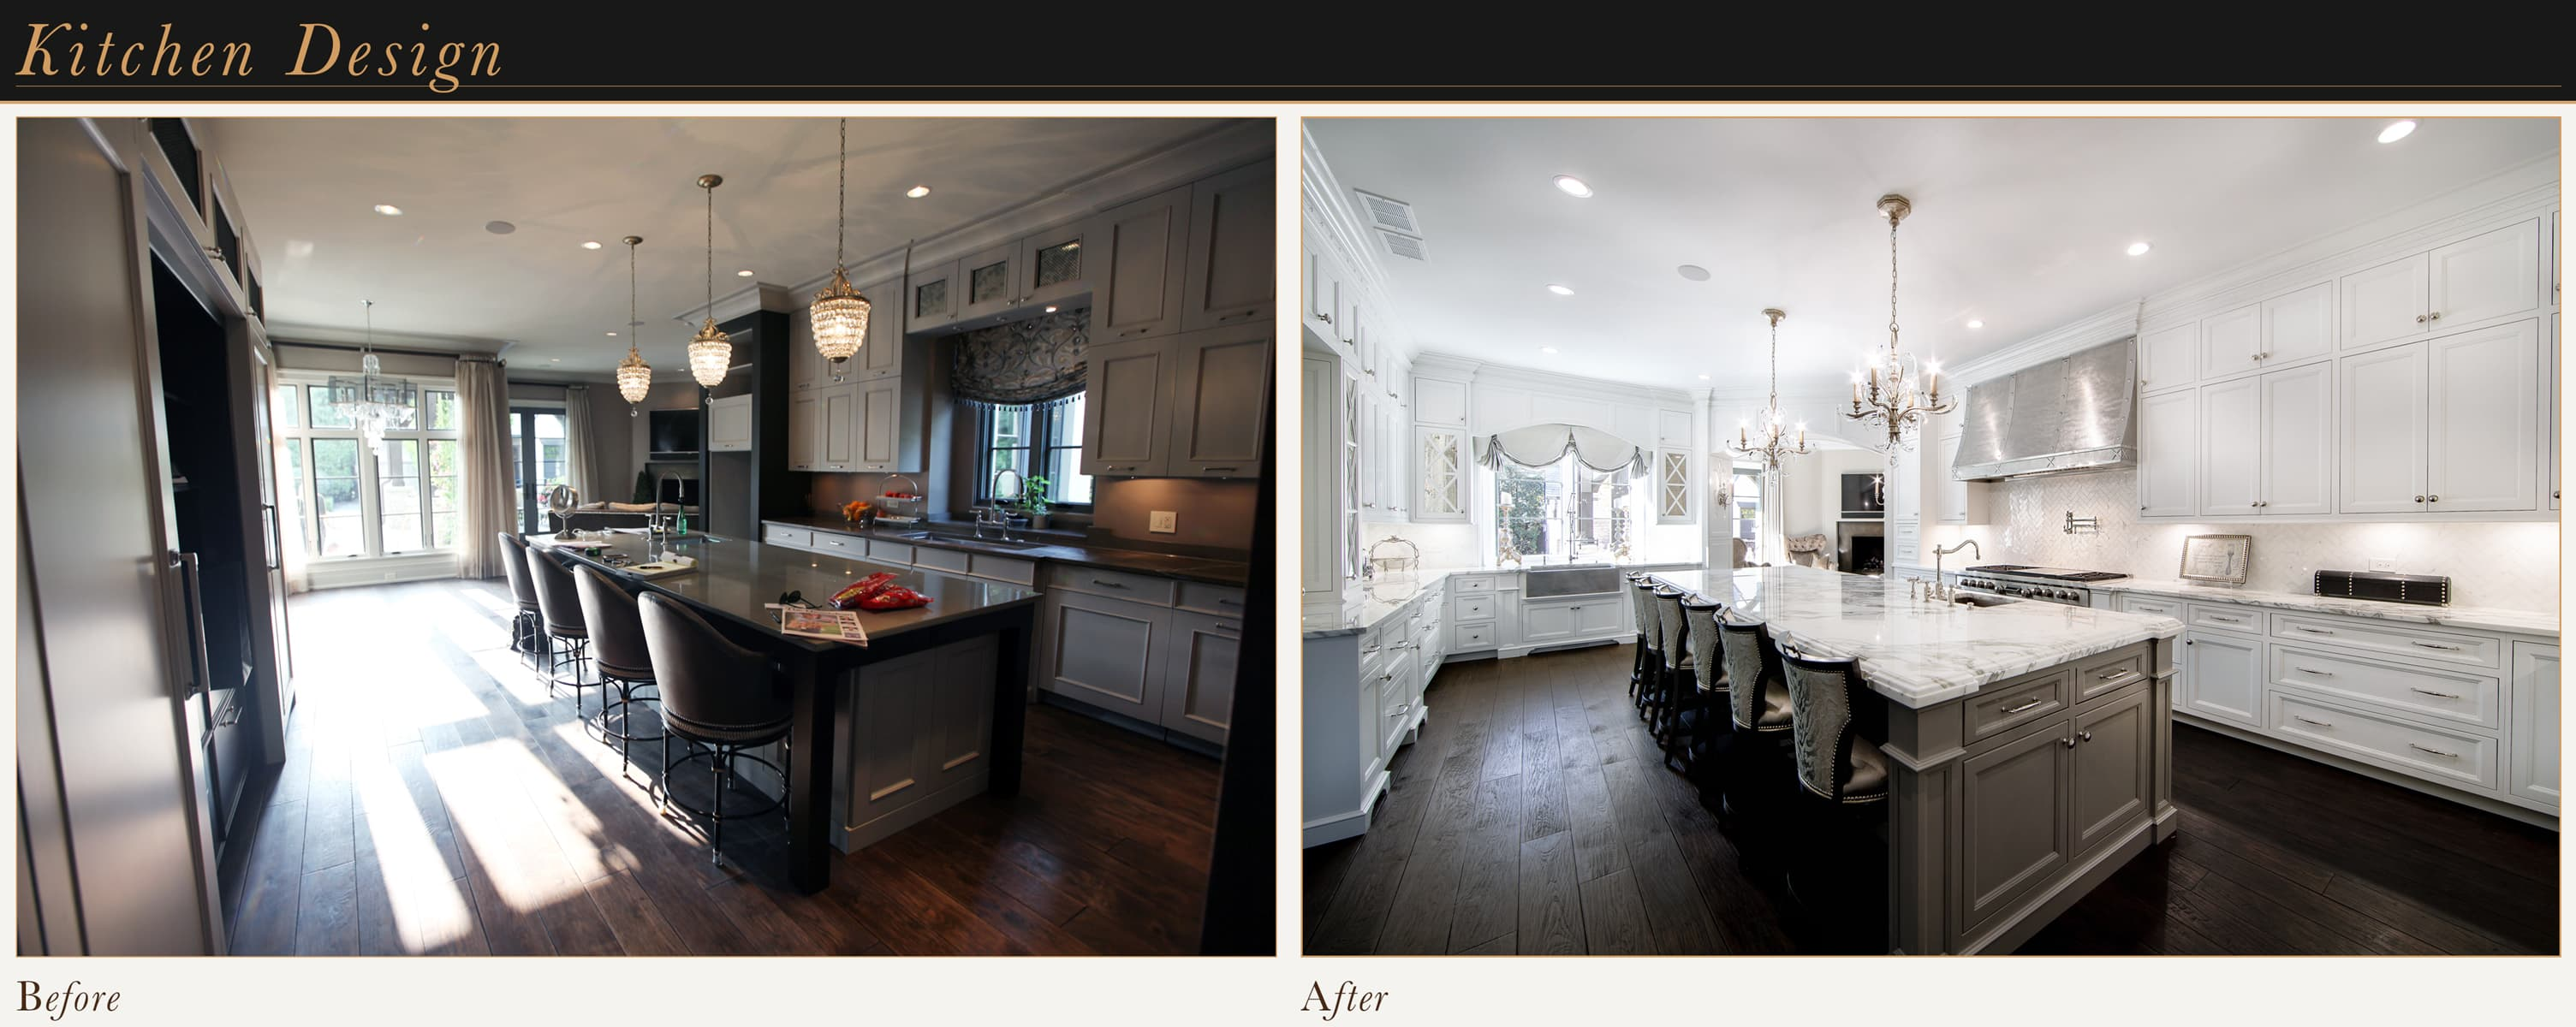 Kitchen-Before-&-After-2